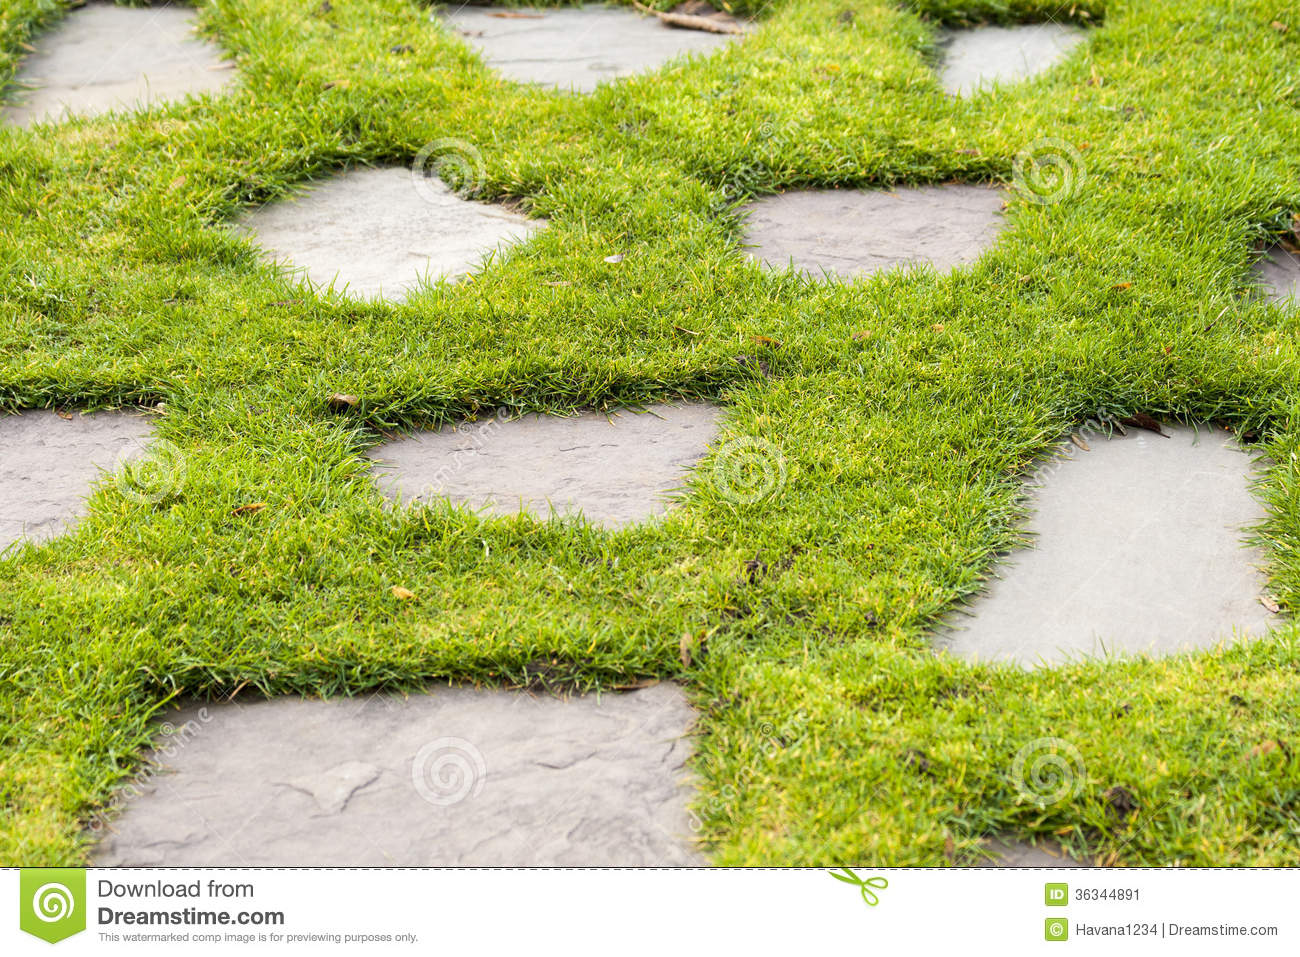 A stone path in the green grass park garden stock image for Stone path in grass